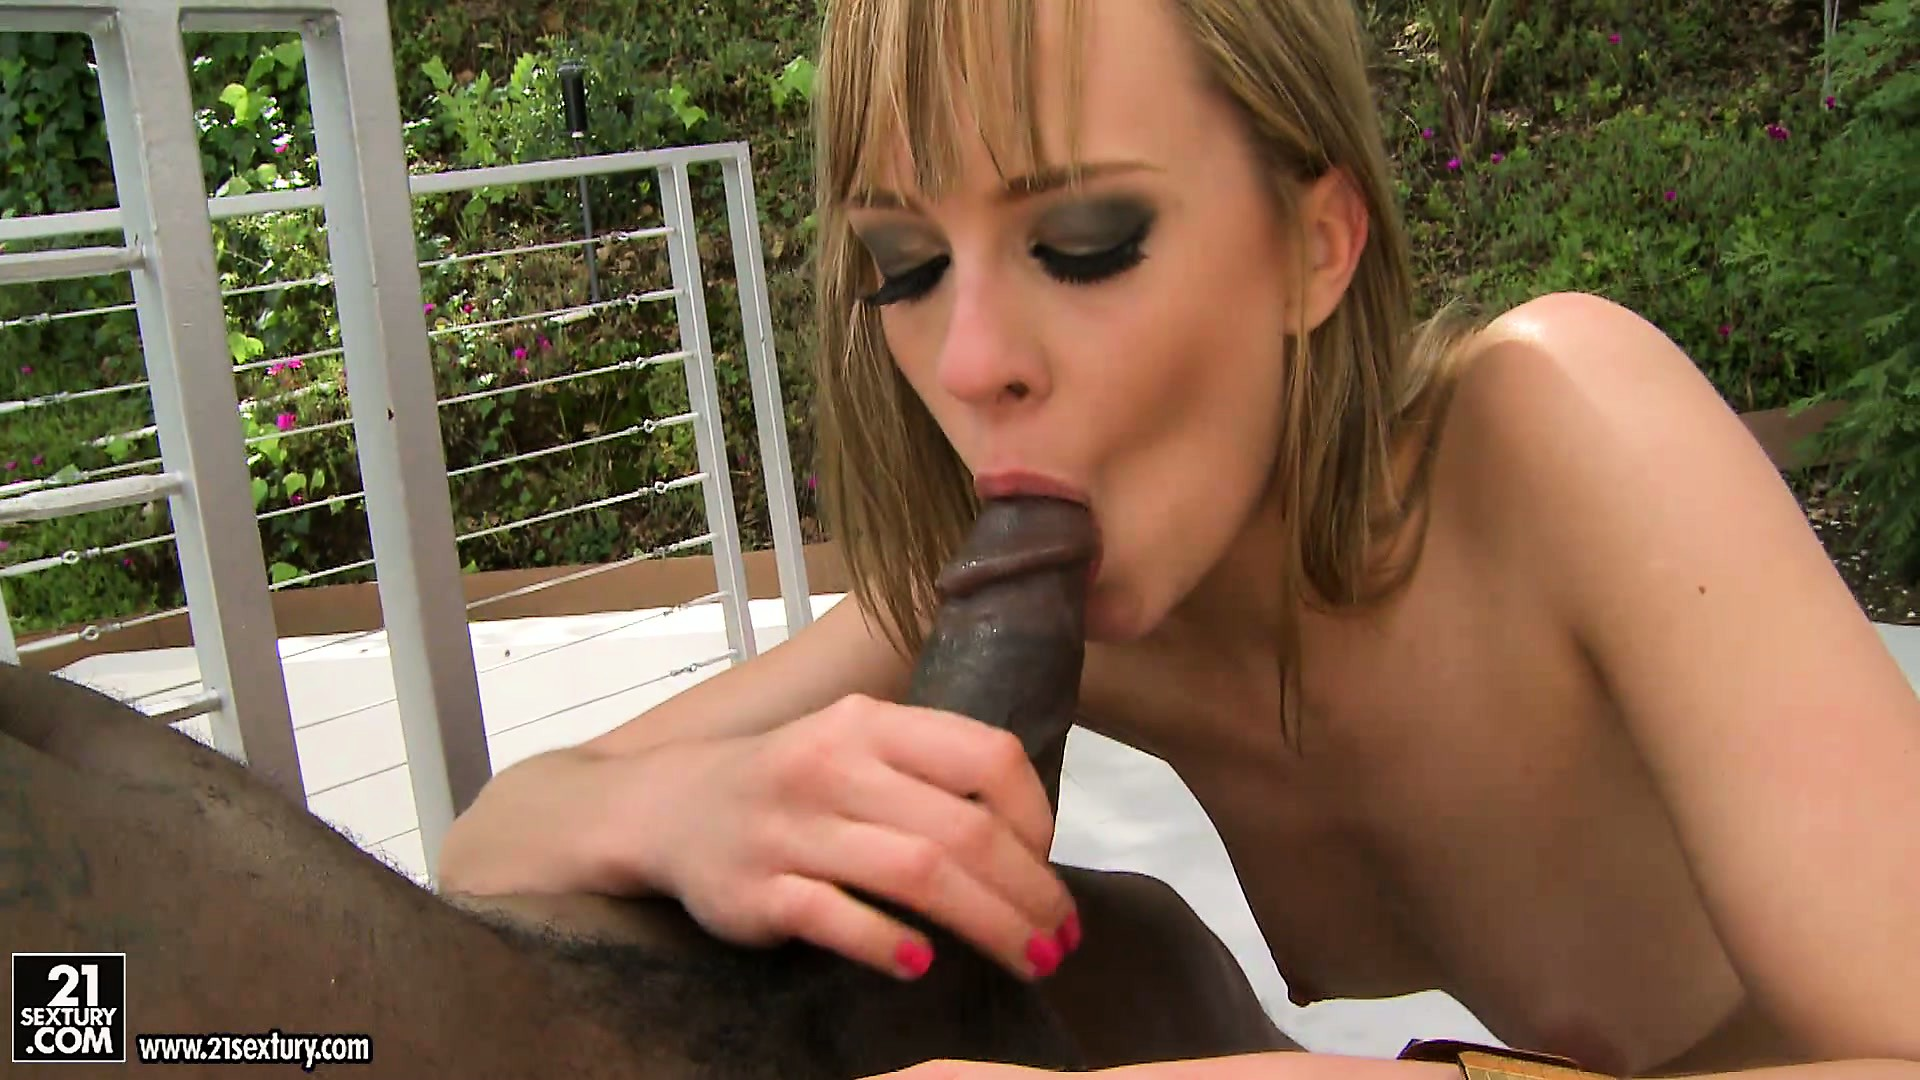 Porno Video of Little Blonde Broad Takes A Ride On A Big Black Cock Outdoors